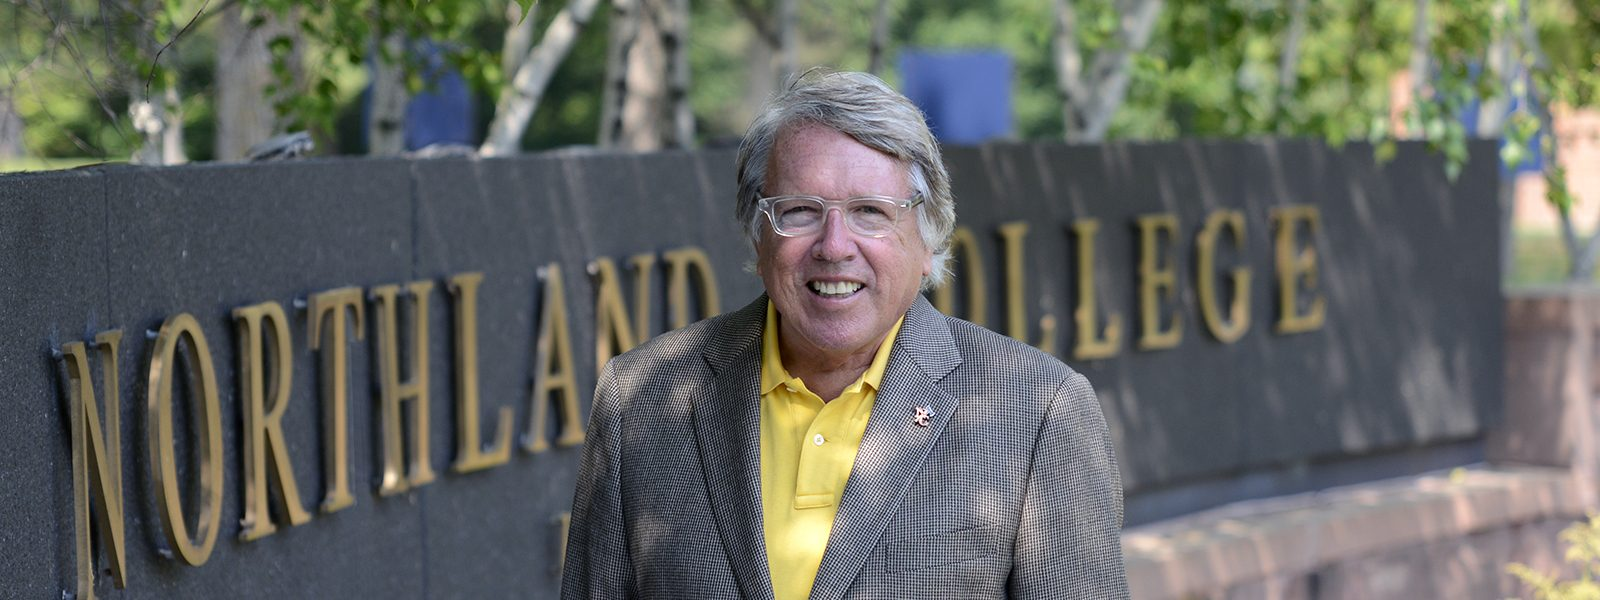 Northland College President Marvin Suomi